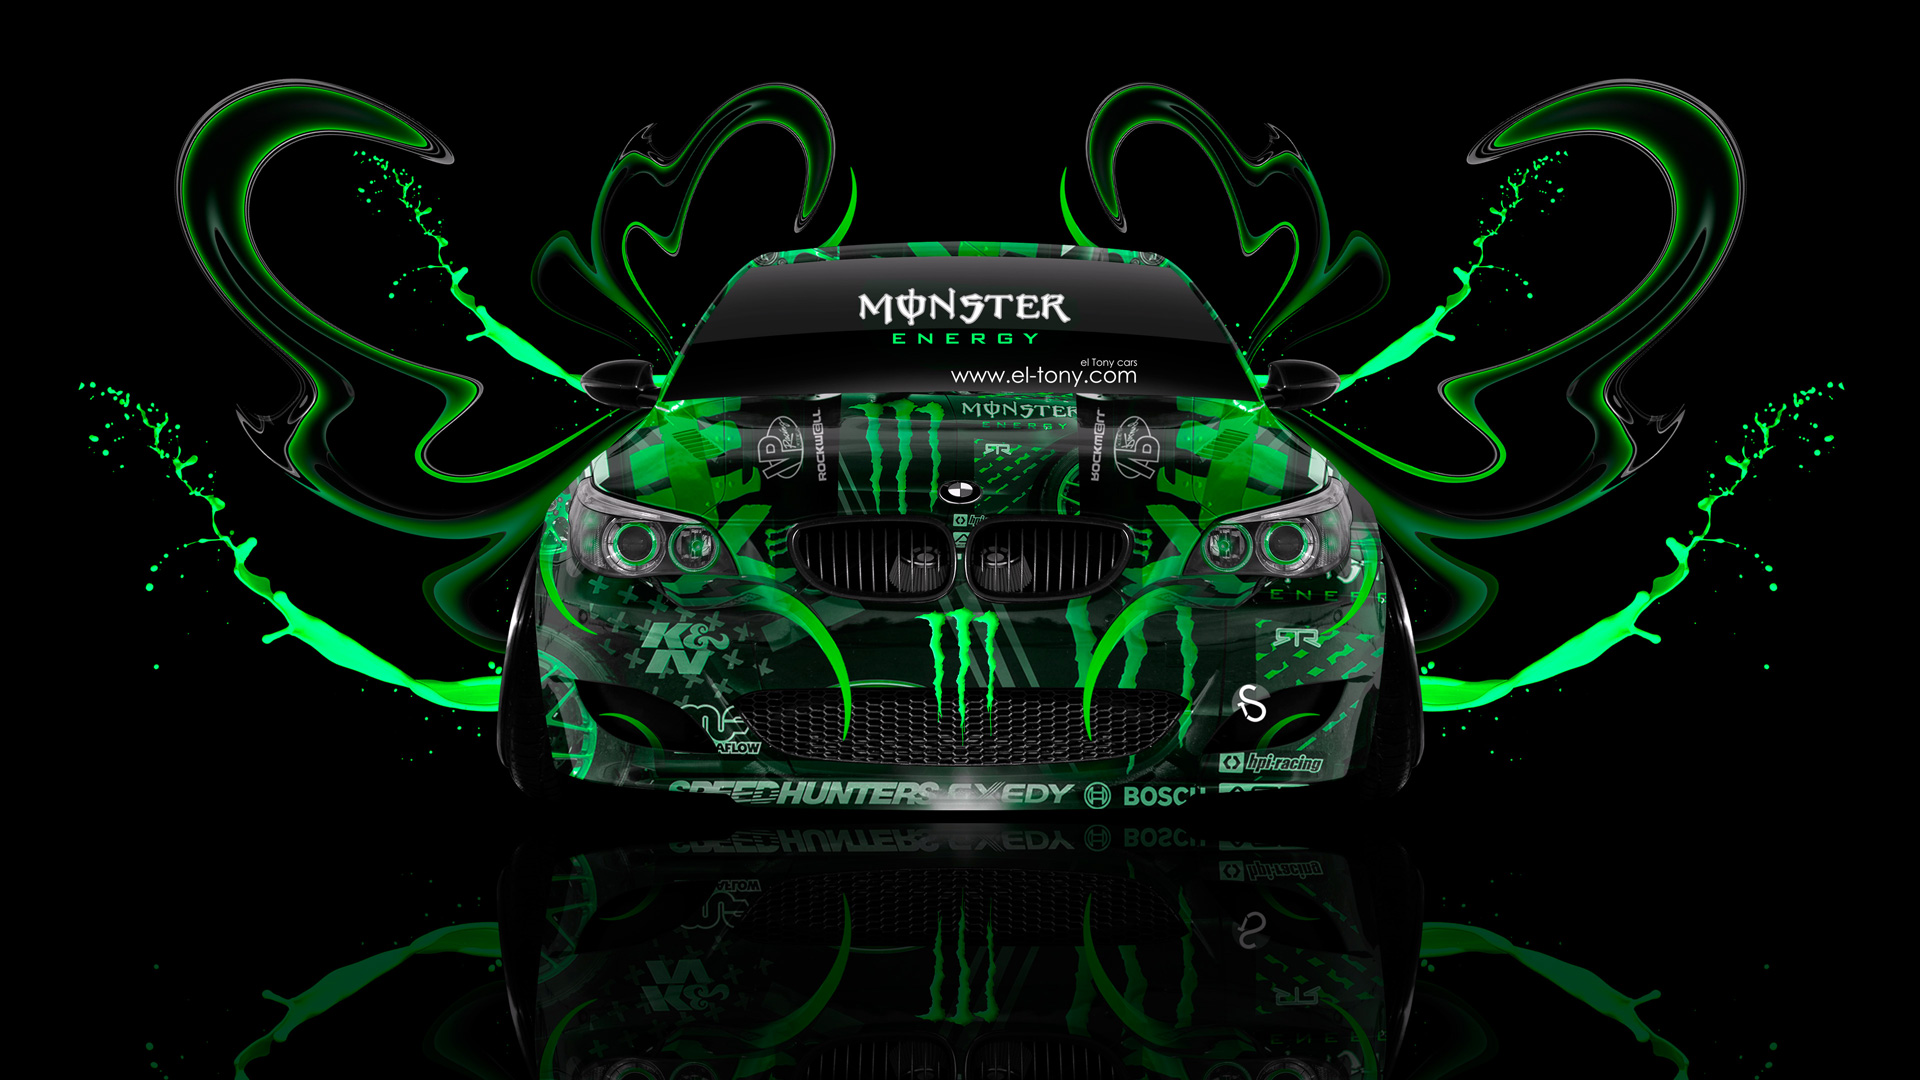 Attrayant Monster Energy BMW M5 Front Plastic Acid Car